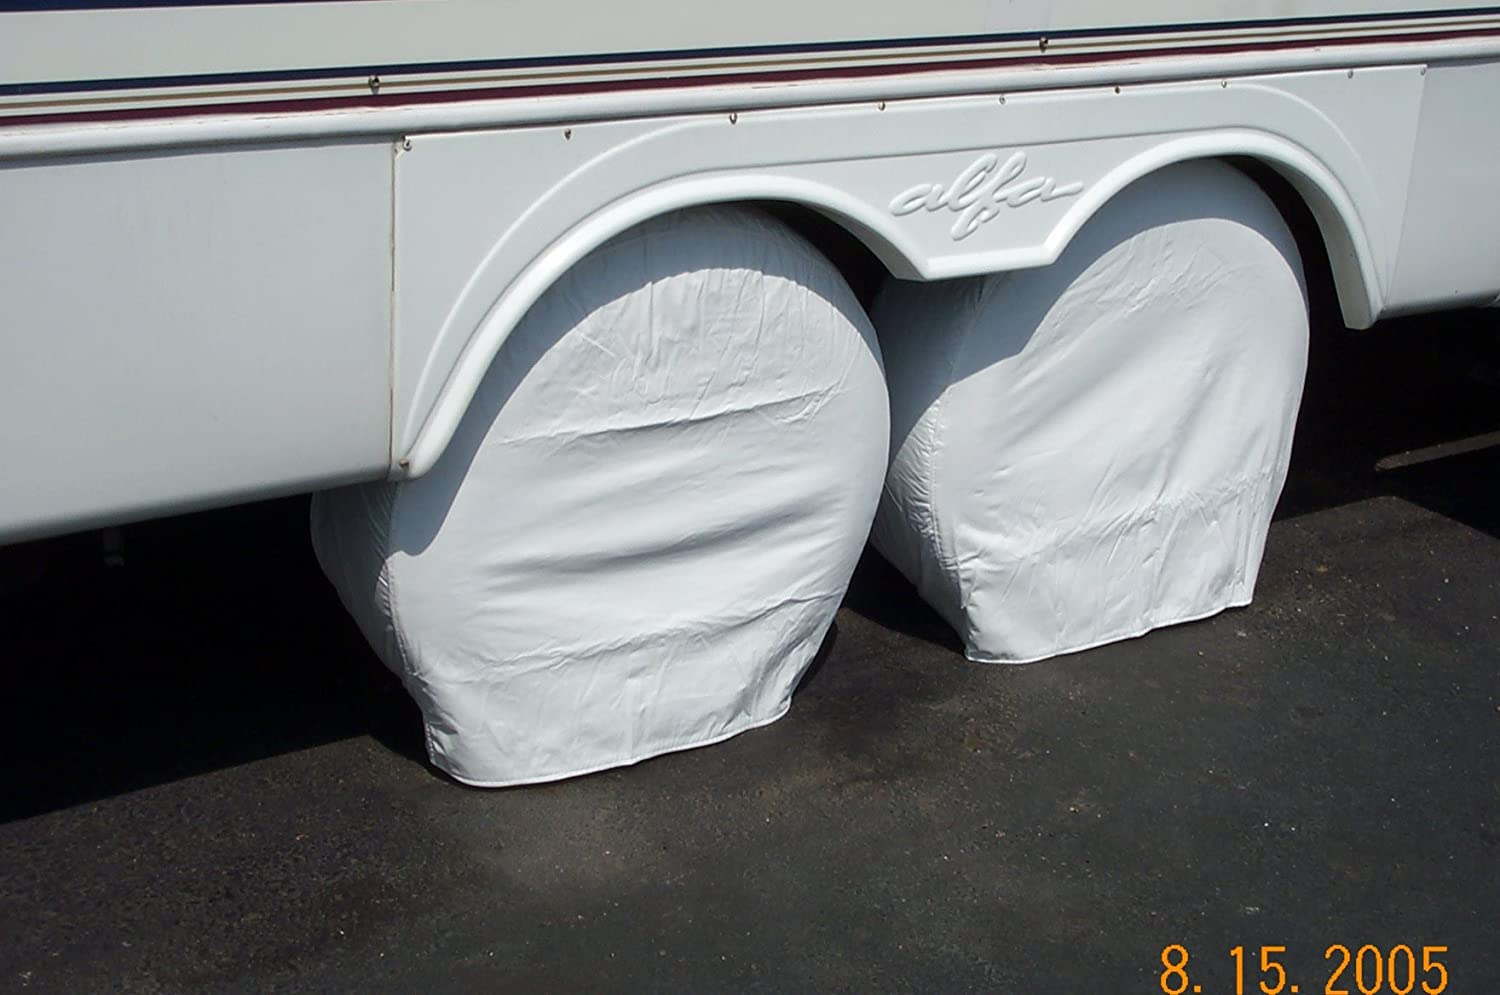 Coach Truck Fits most tires on a 22.5 Rim Bus PAIR Storage Vinyl Tire Covers 40-42 Diameter Tires BLACK for RV